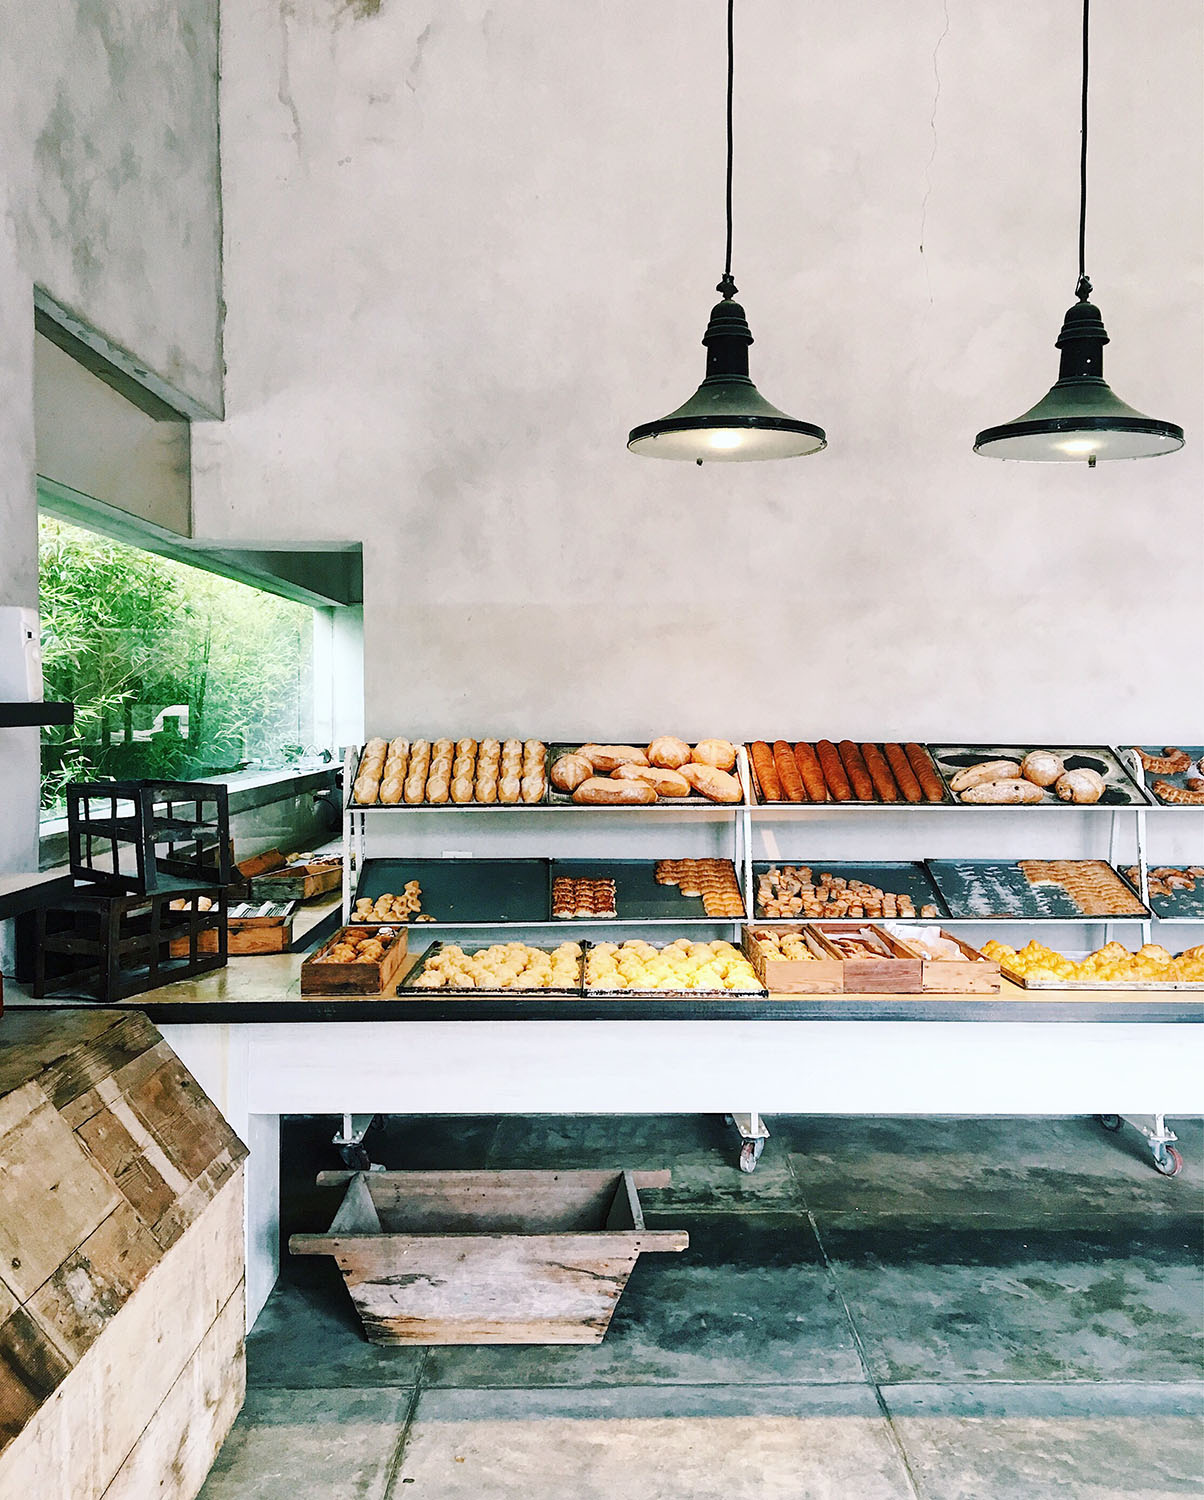 The bakery at La Linda.